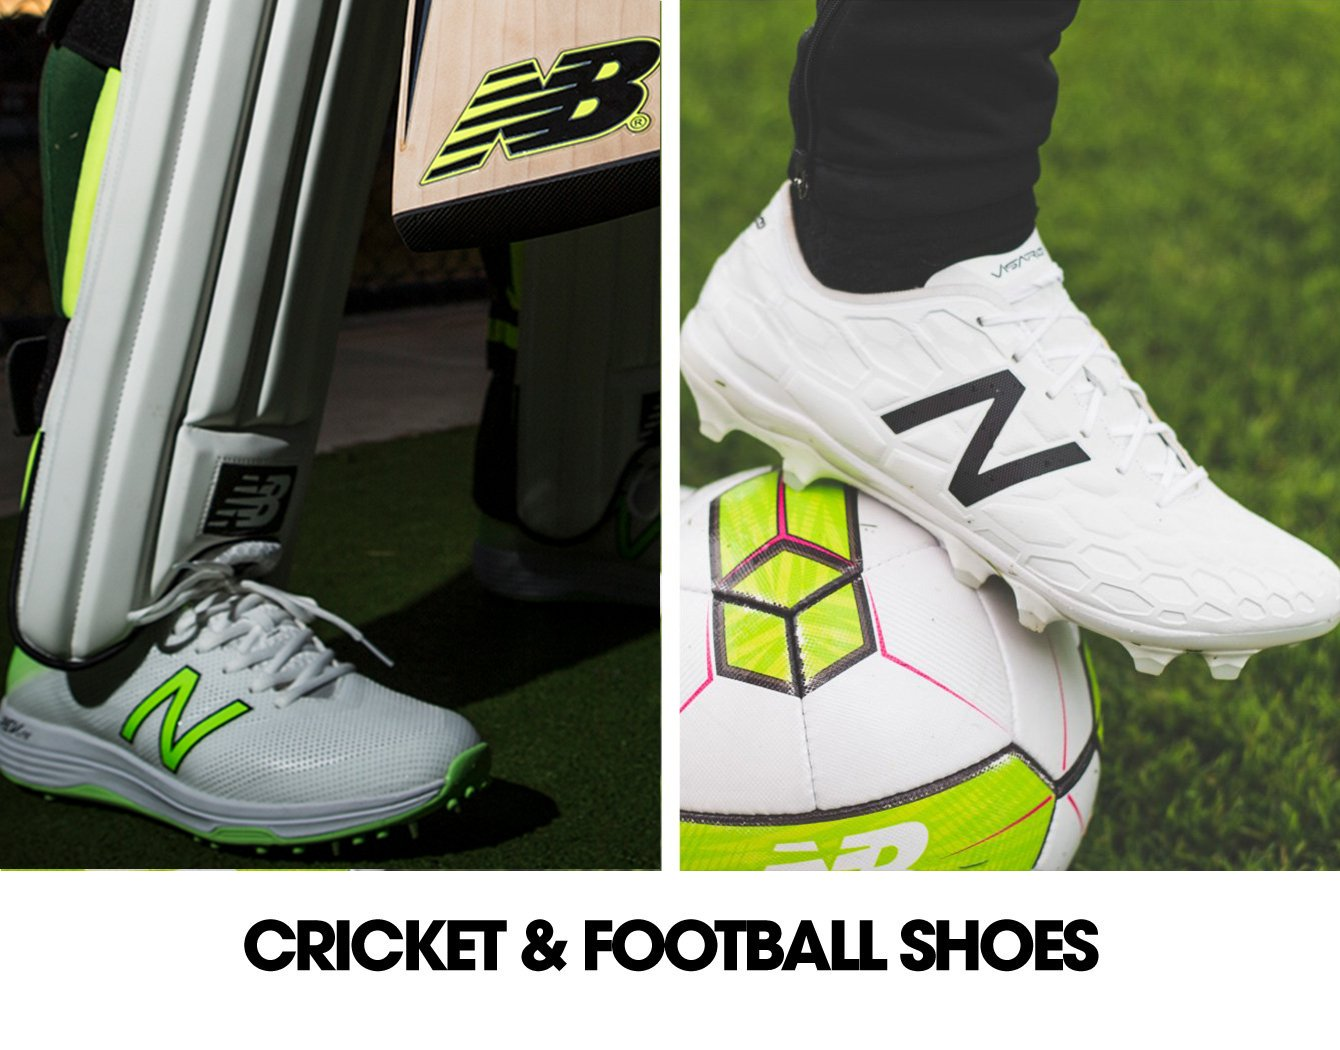 Cricket and Football Shoes